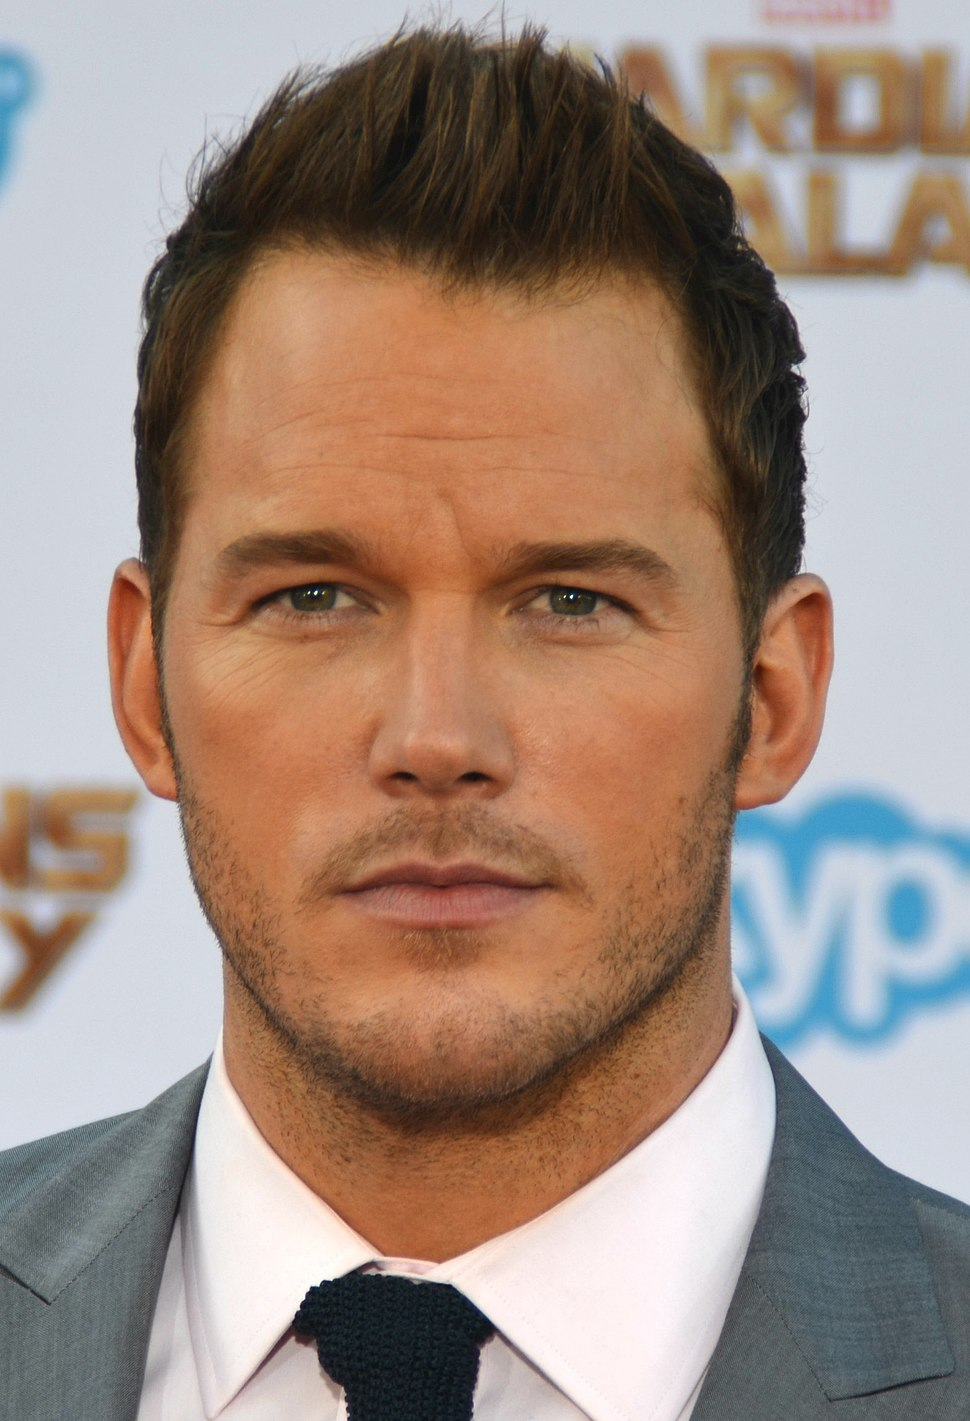 Chris Pratt - Guardians of the Galaxy premiere - July 2014 (cropped)